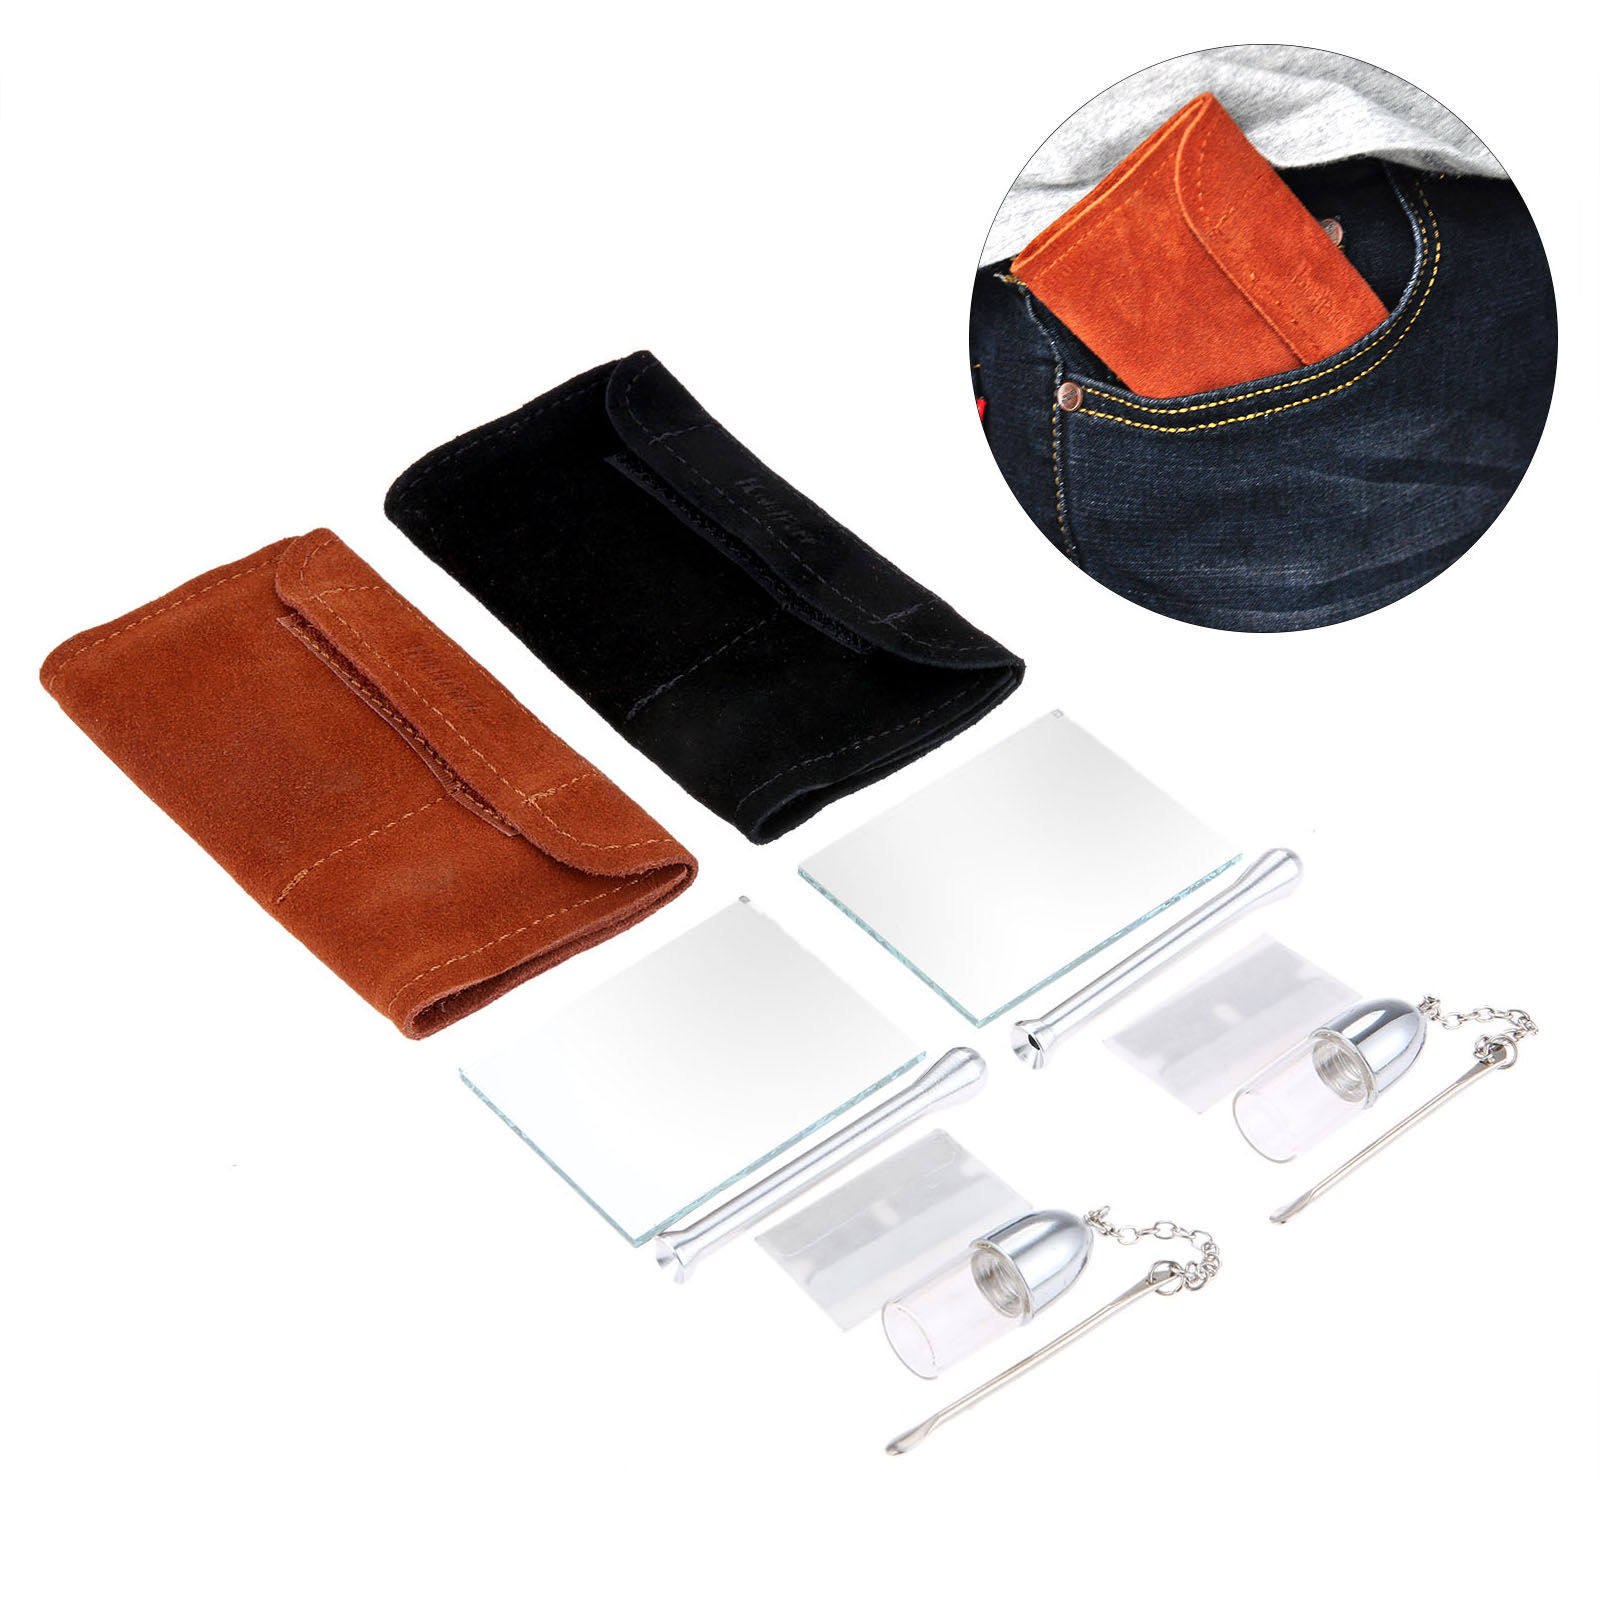 Portable Leather <font><b>Tobacco</b></font> Pouch Bag+Snuff BulletSnorter Tool Sniffer Straw Hooter Hoover Pouch Bag Pipe <font><b>Case</b></font> Pocket image